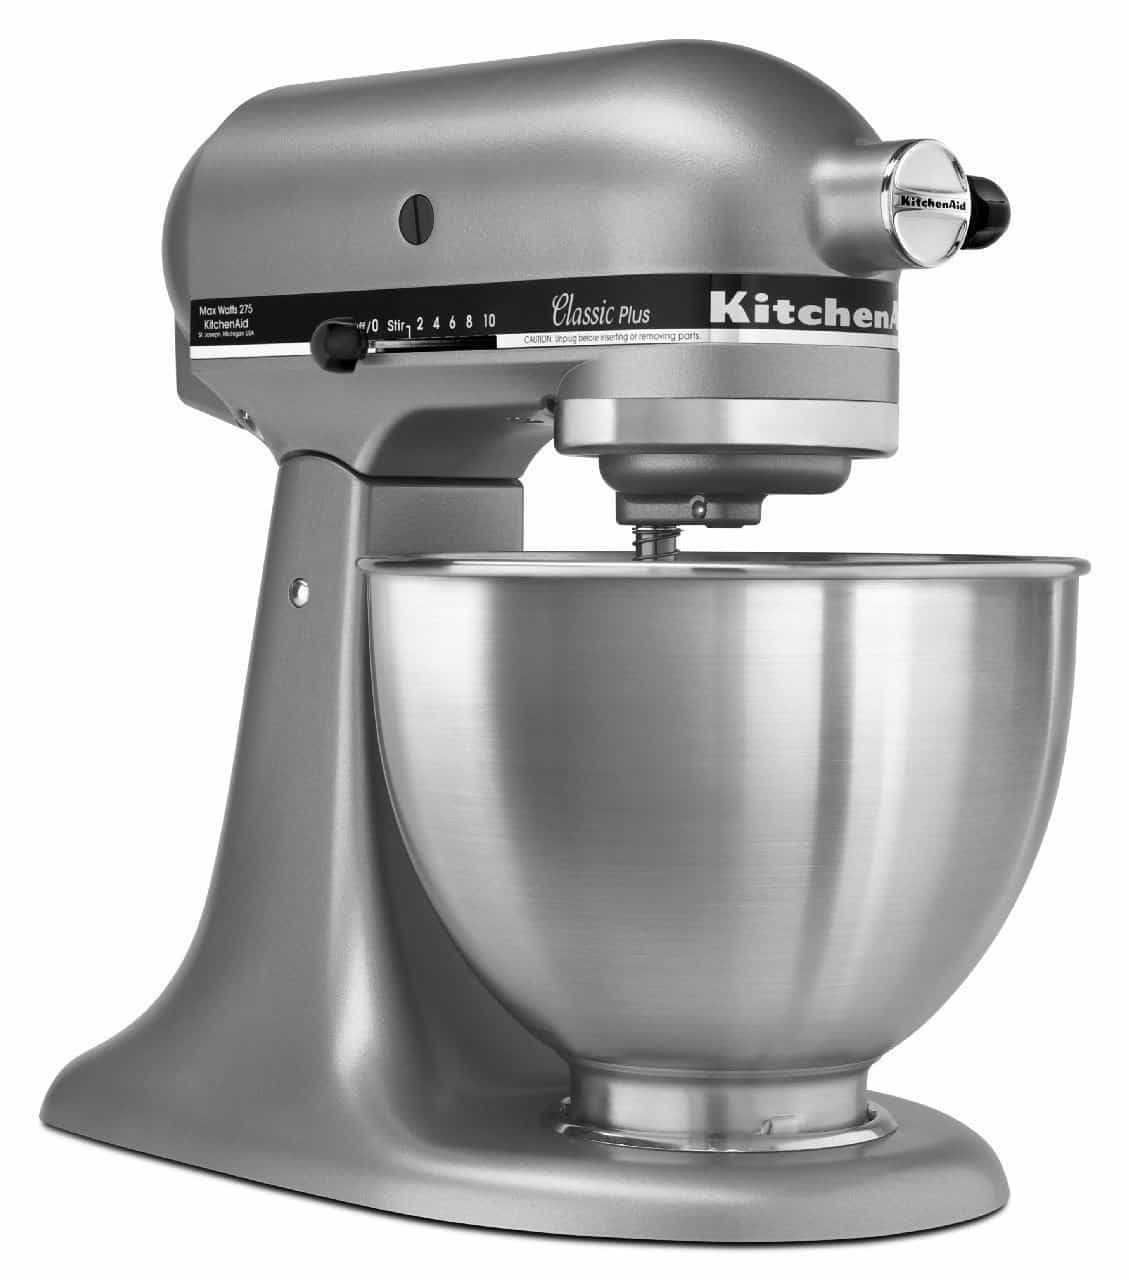 Kitchen Aid Mixer And Eagle Brand Giveaway The Who